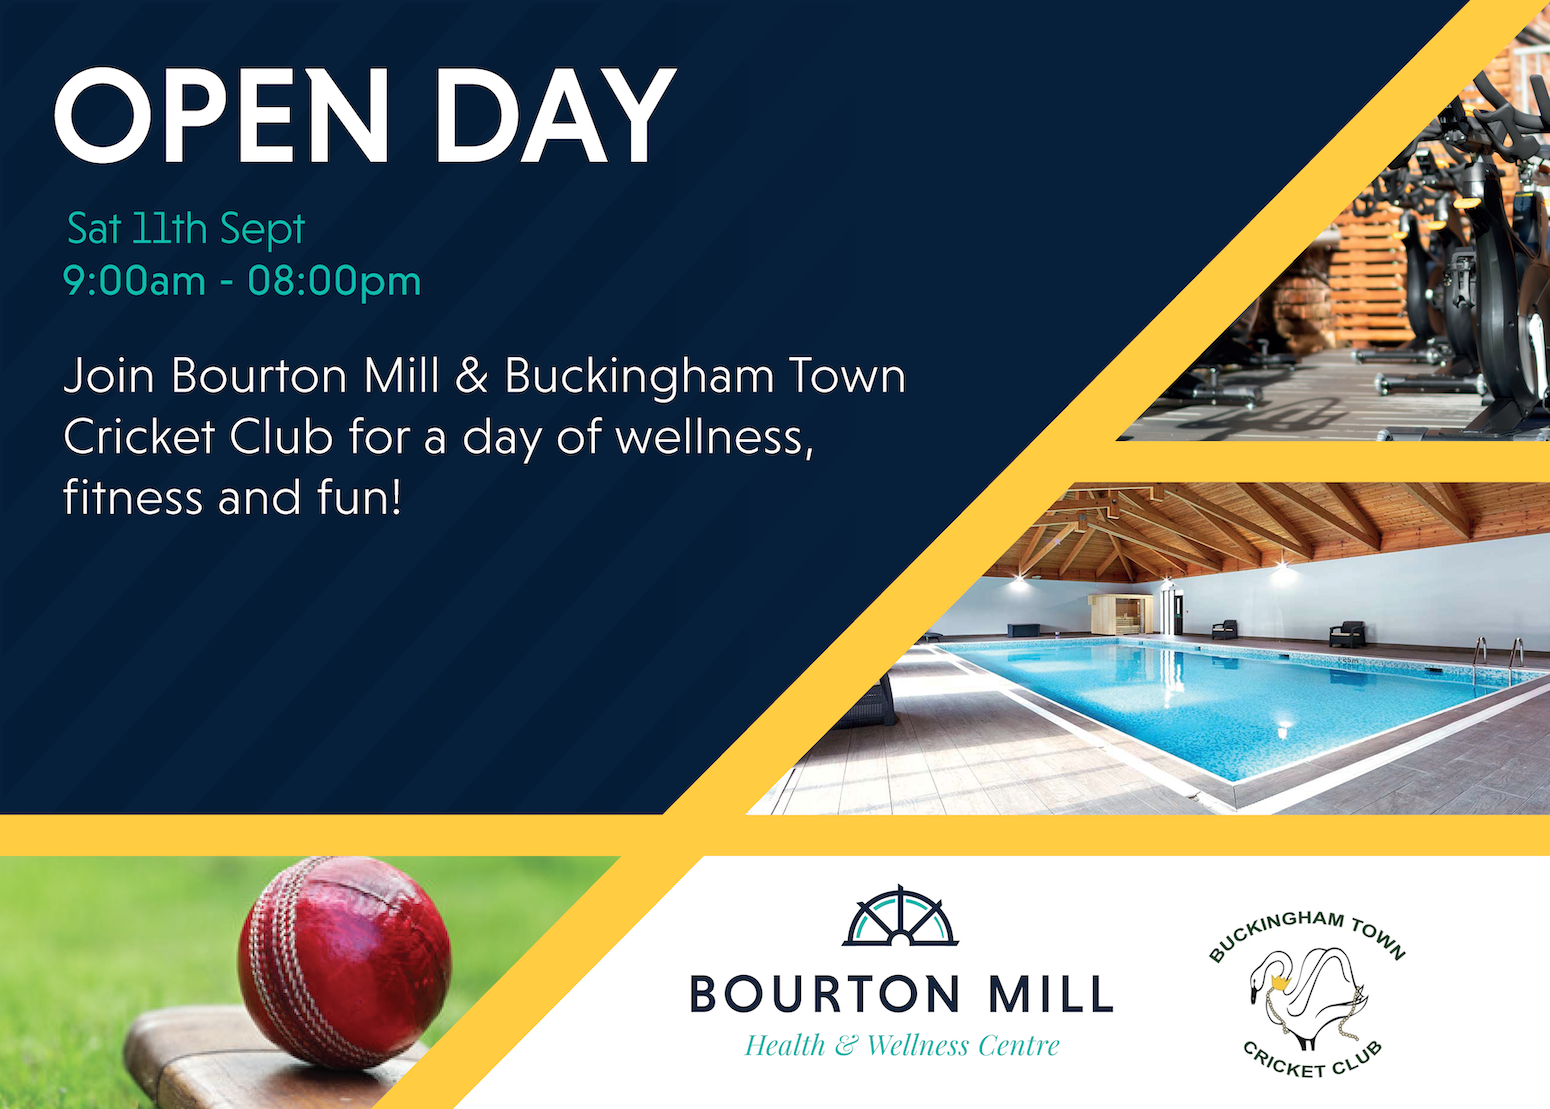 Bourton Mill and Buckingham Town Cricket Club Open Day!